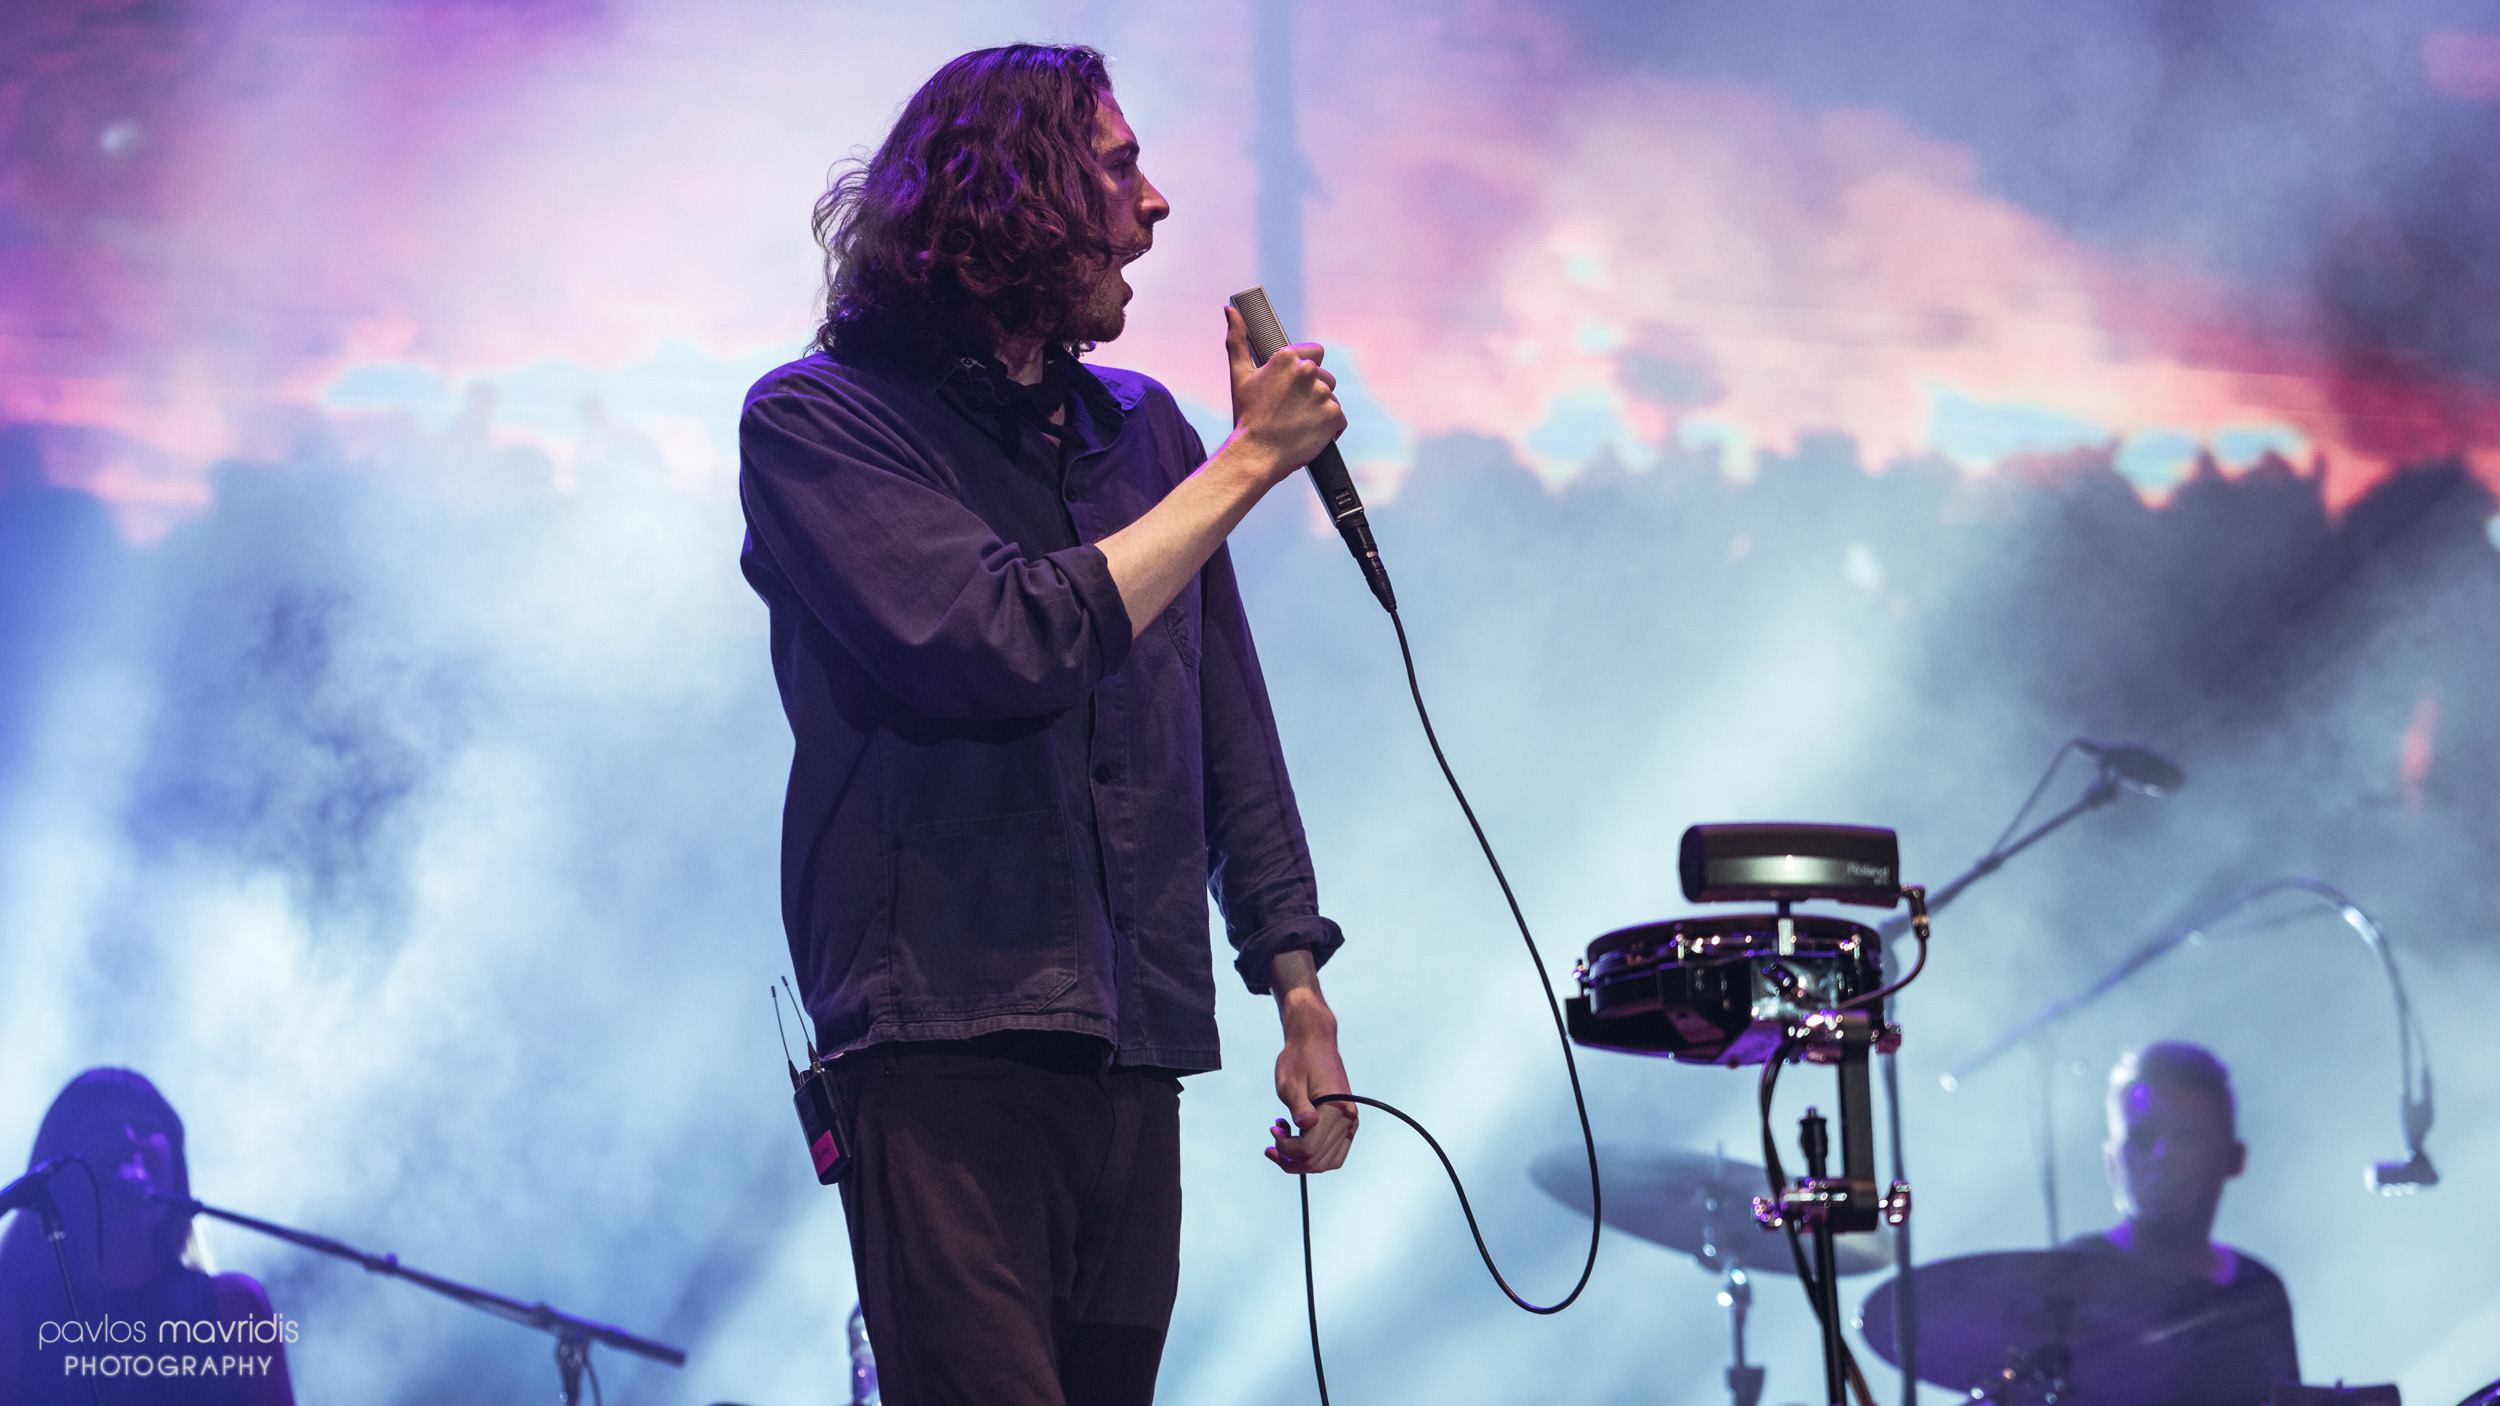 Hozier_Release Athens 2019_06_hires_web.jpg